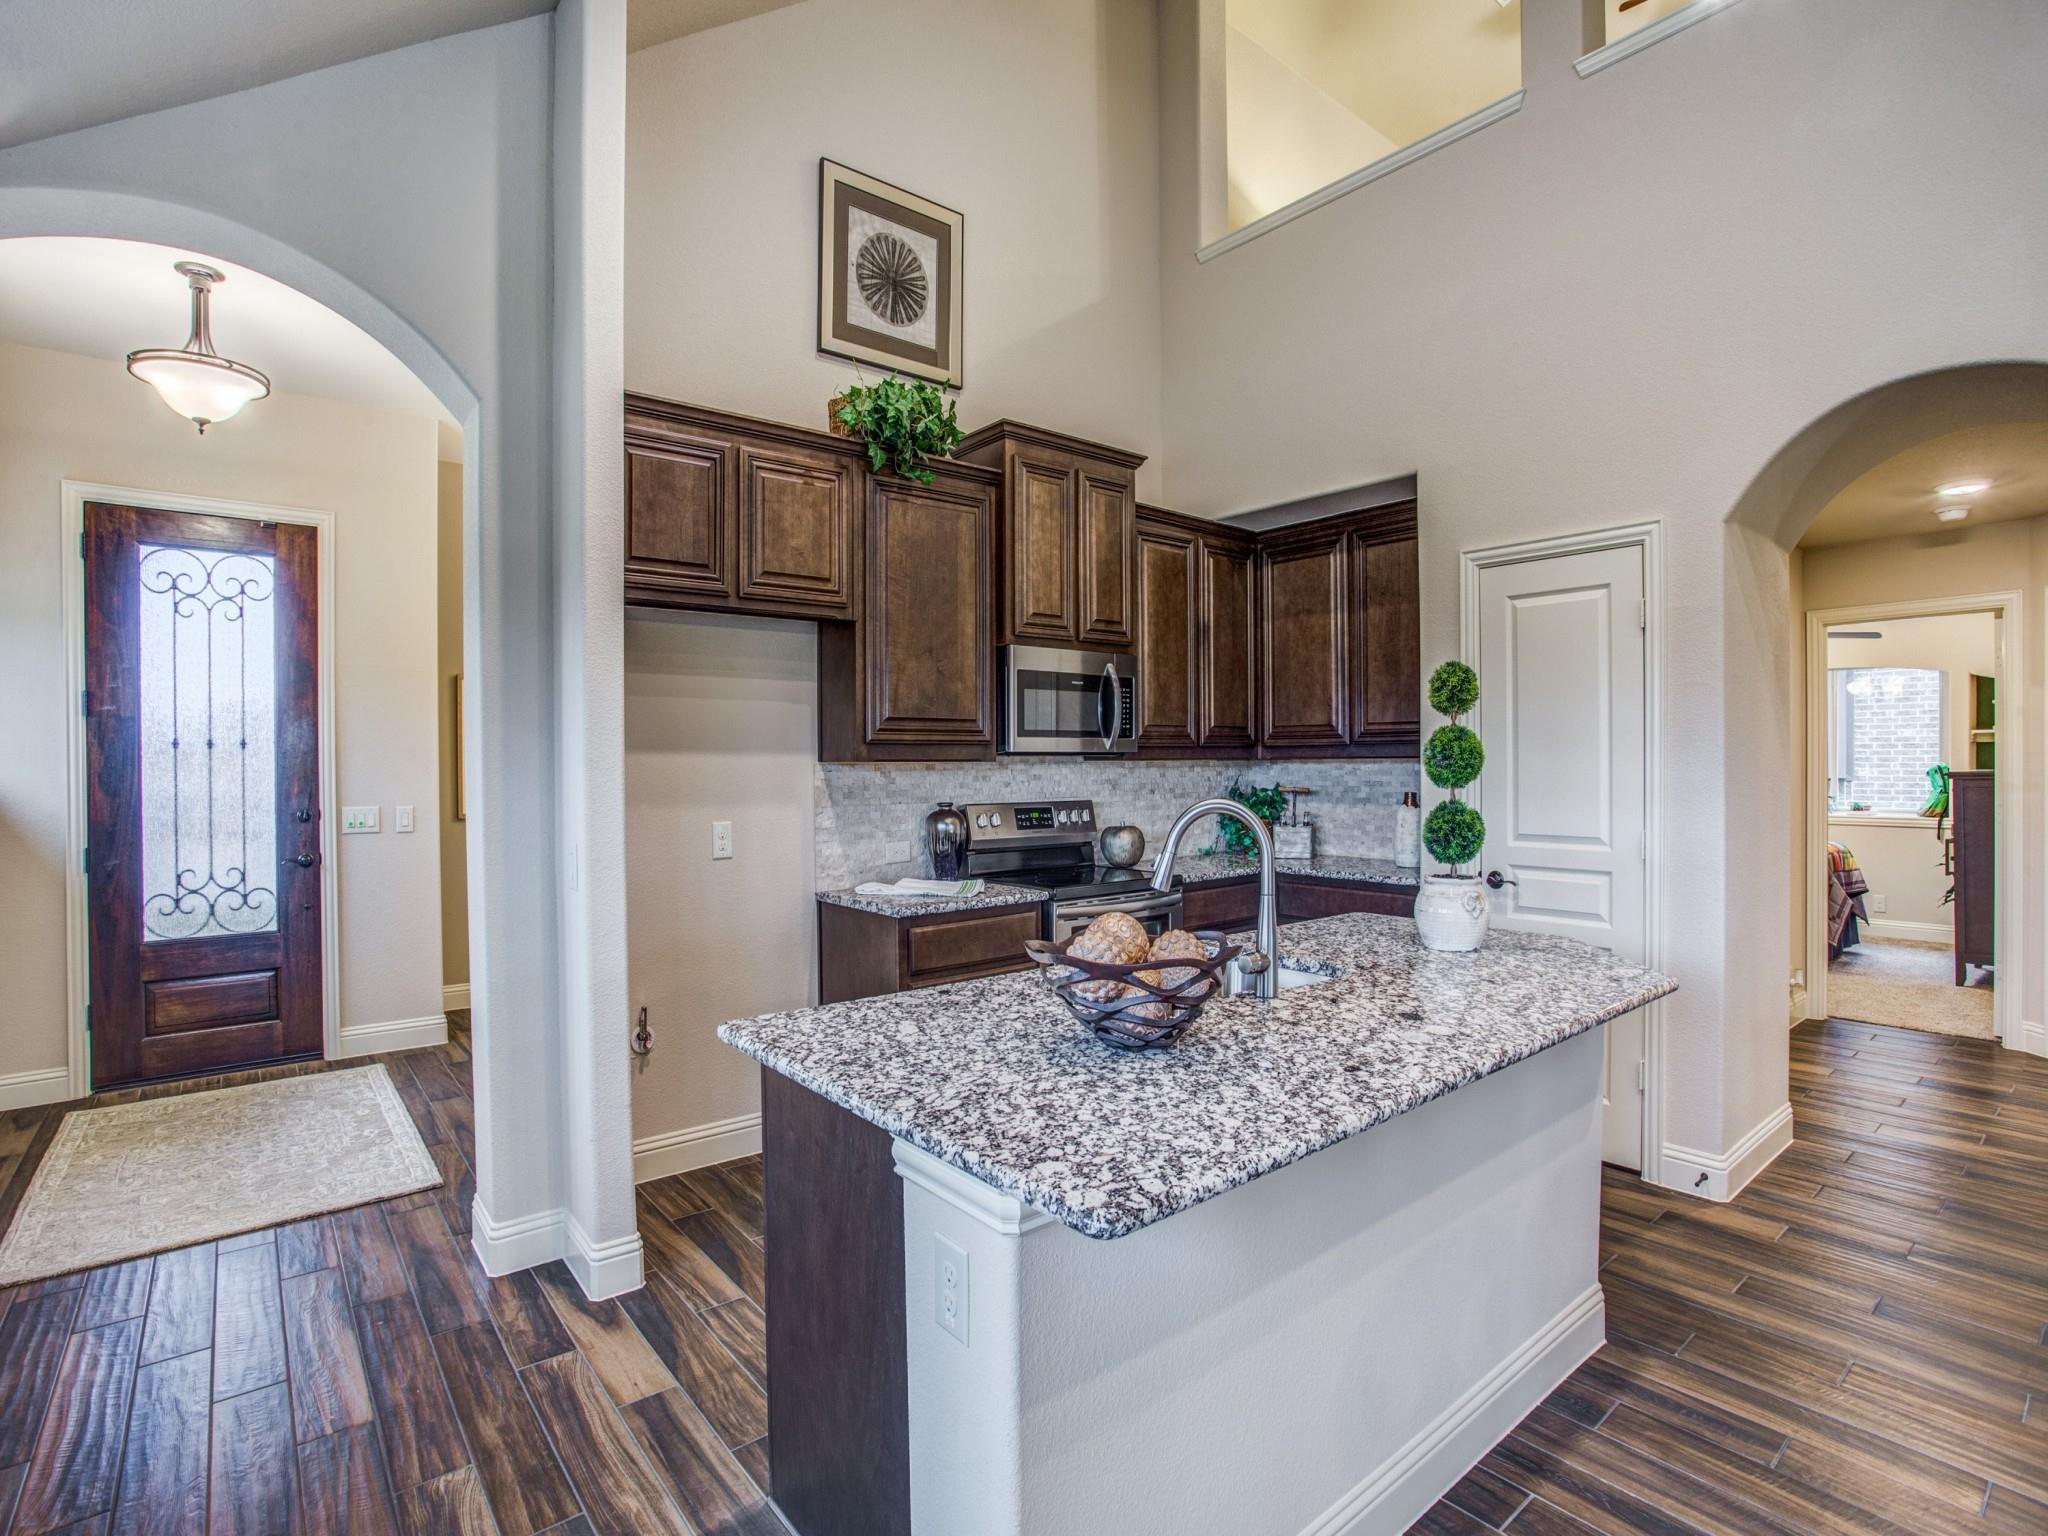 Kitchen featured in the Dogwood III By Bloomfield Homes in Dallas, TX